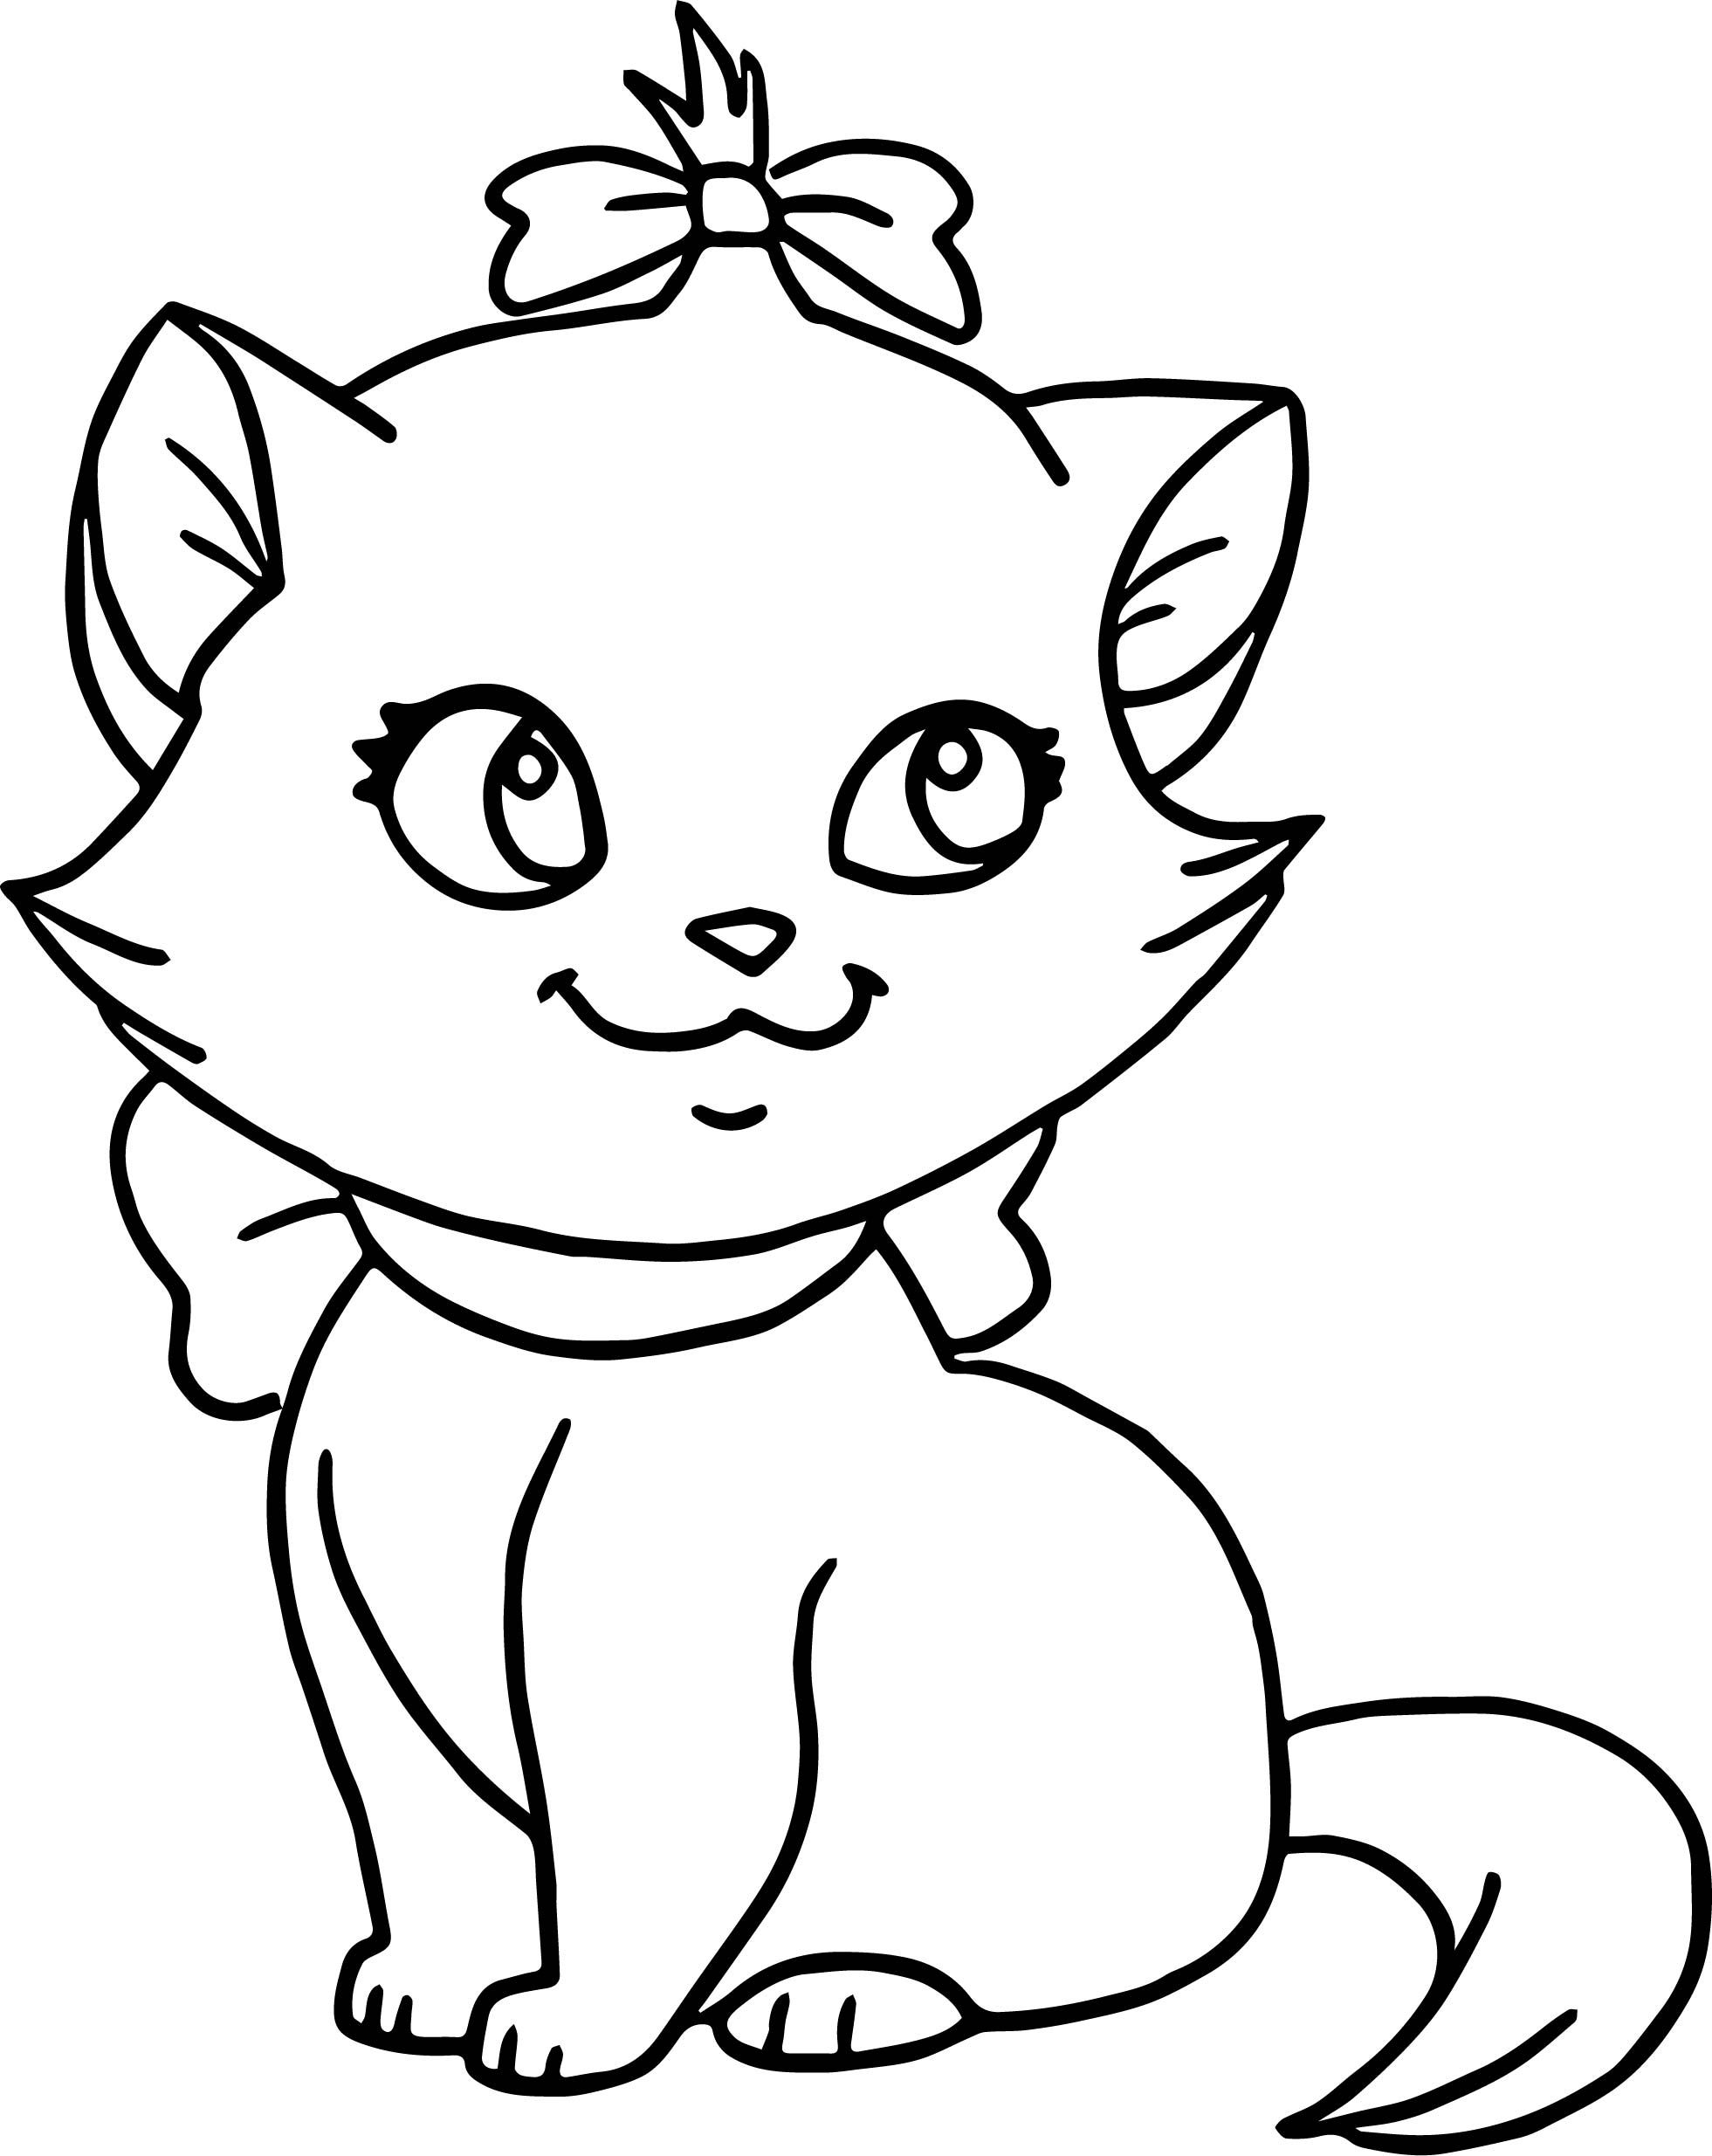 47++ Cute kitten coloring pages printable ideas in 2021